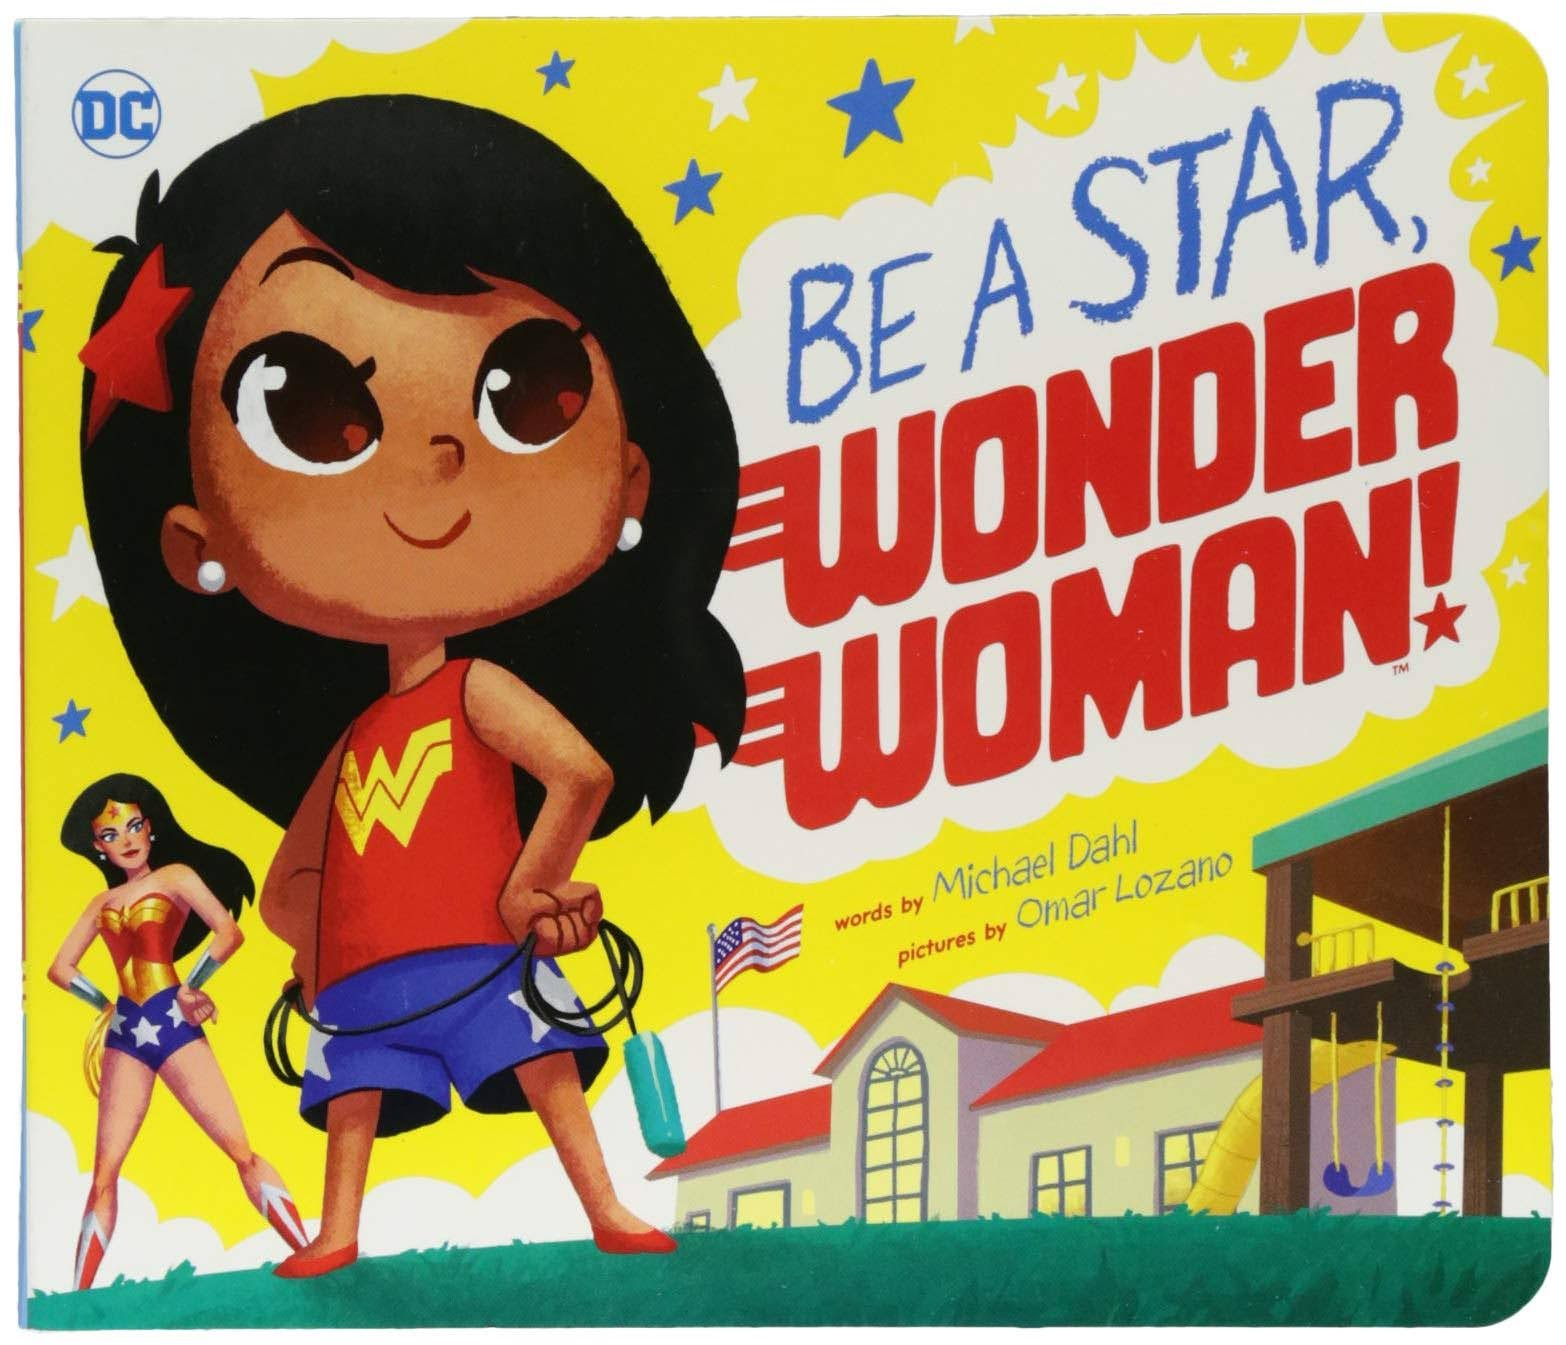 Be A Star, Wonder Woman! by Michael Dahl and illustrated by Omar Lozano